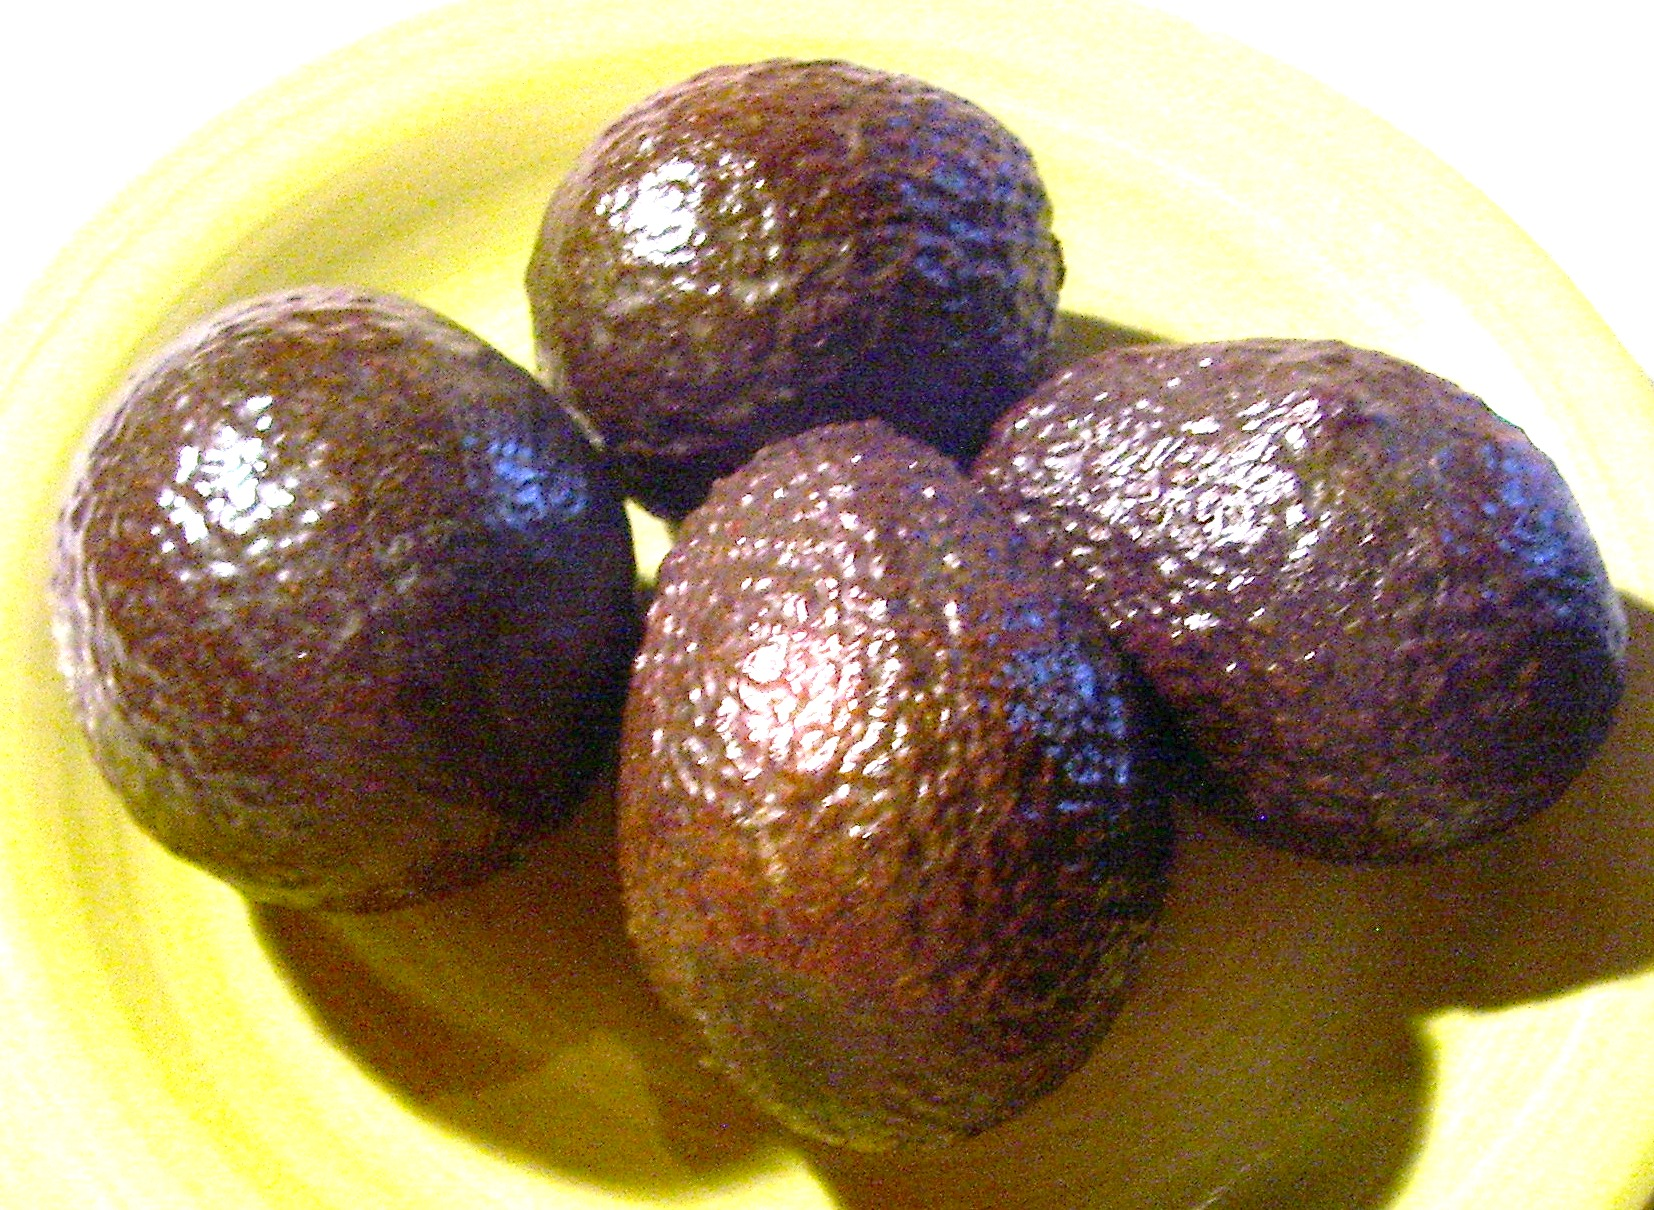 Large Avocados at just the right stage of ripeness for your enjoyment.